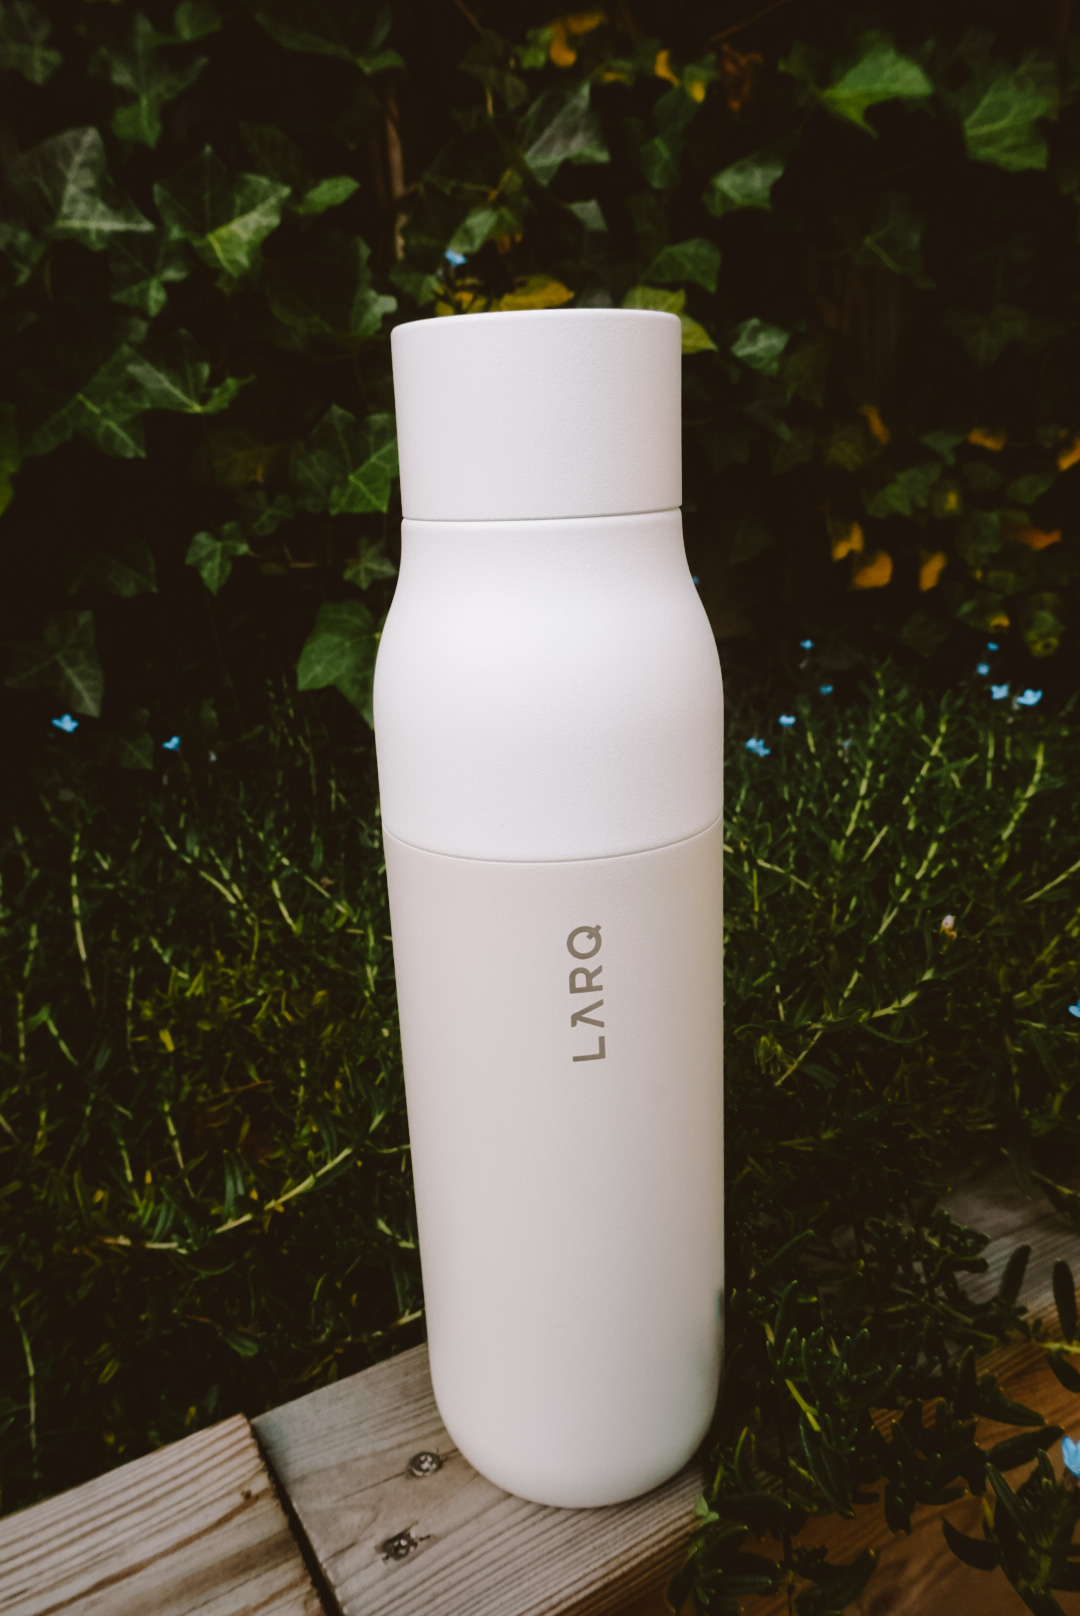 larq water bottle, purifying water bottle, water filtering bottle